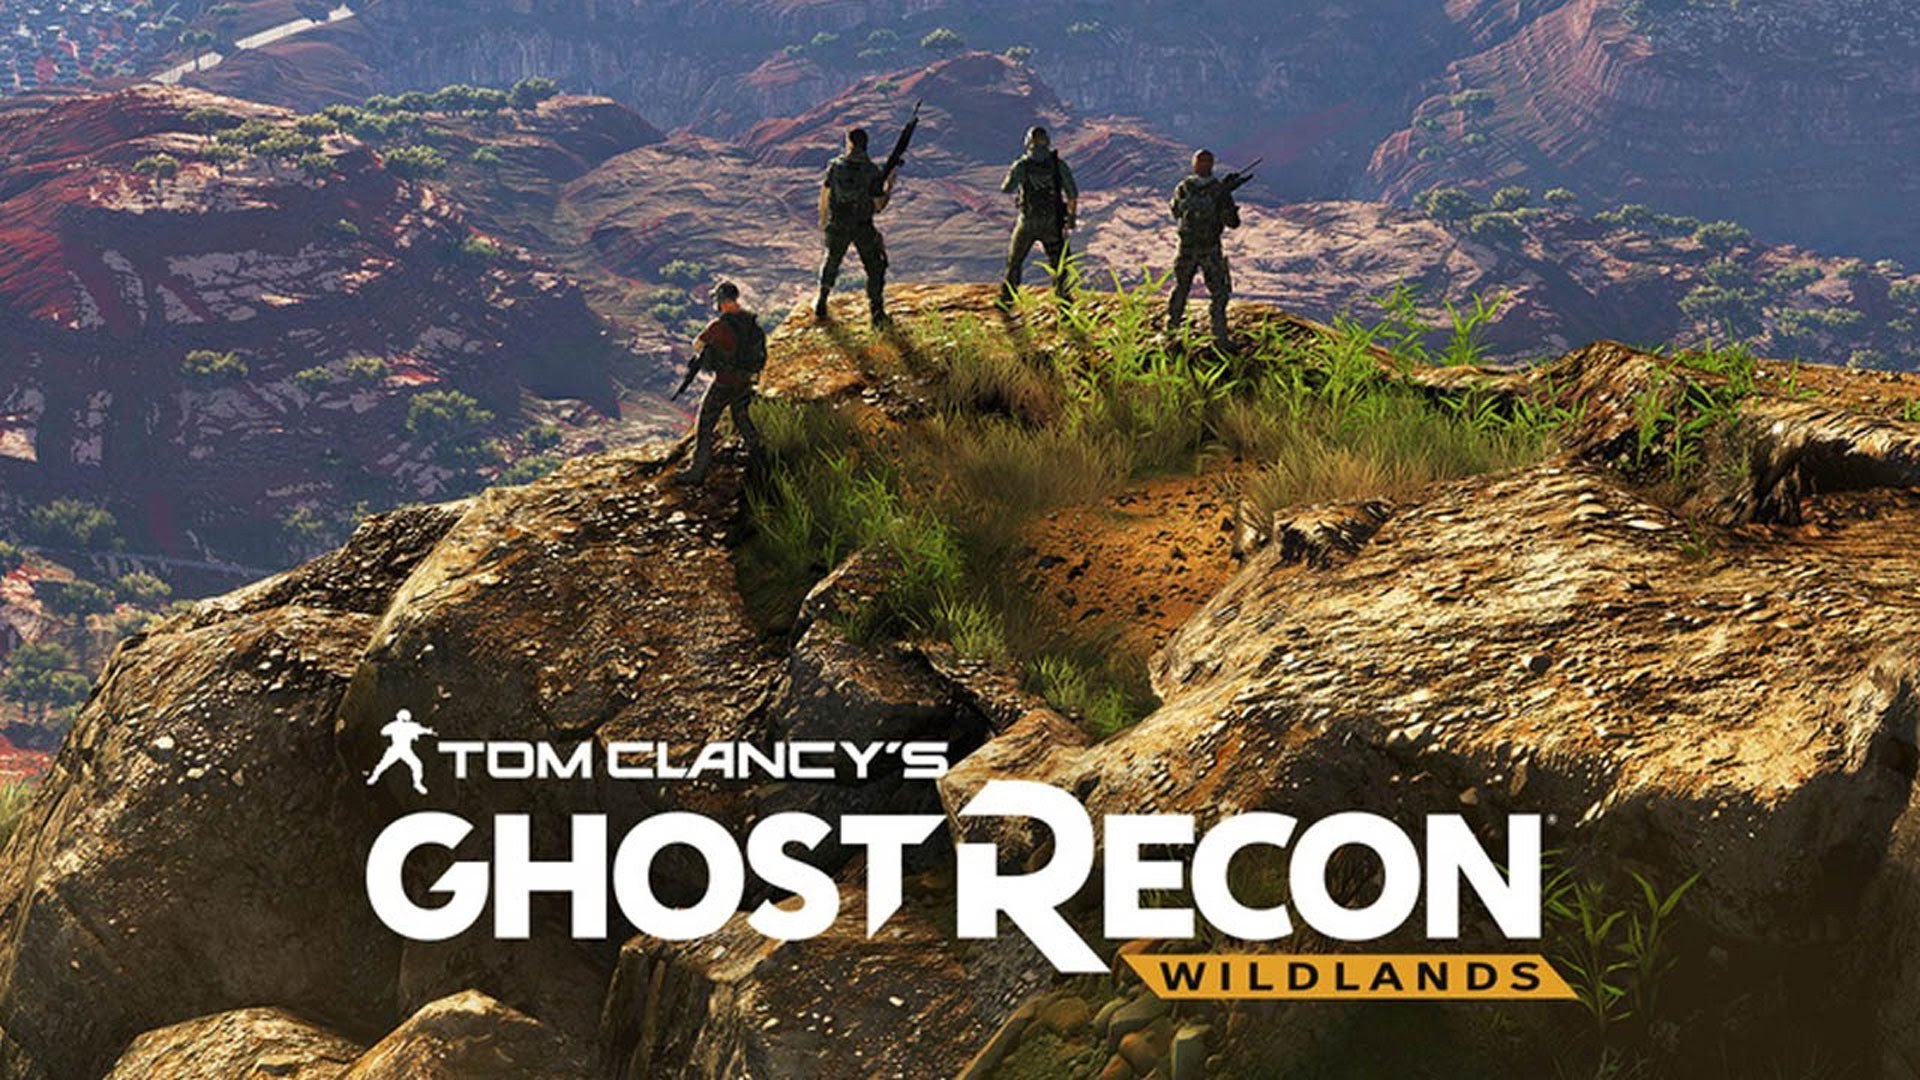 Ghost Recon Wildlands 4k Hd Desktop Wallpaper For Dual: Tom Clancy's Ghost Recon Wildlands Wallpapers Images